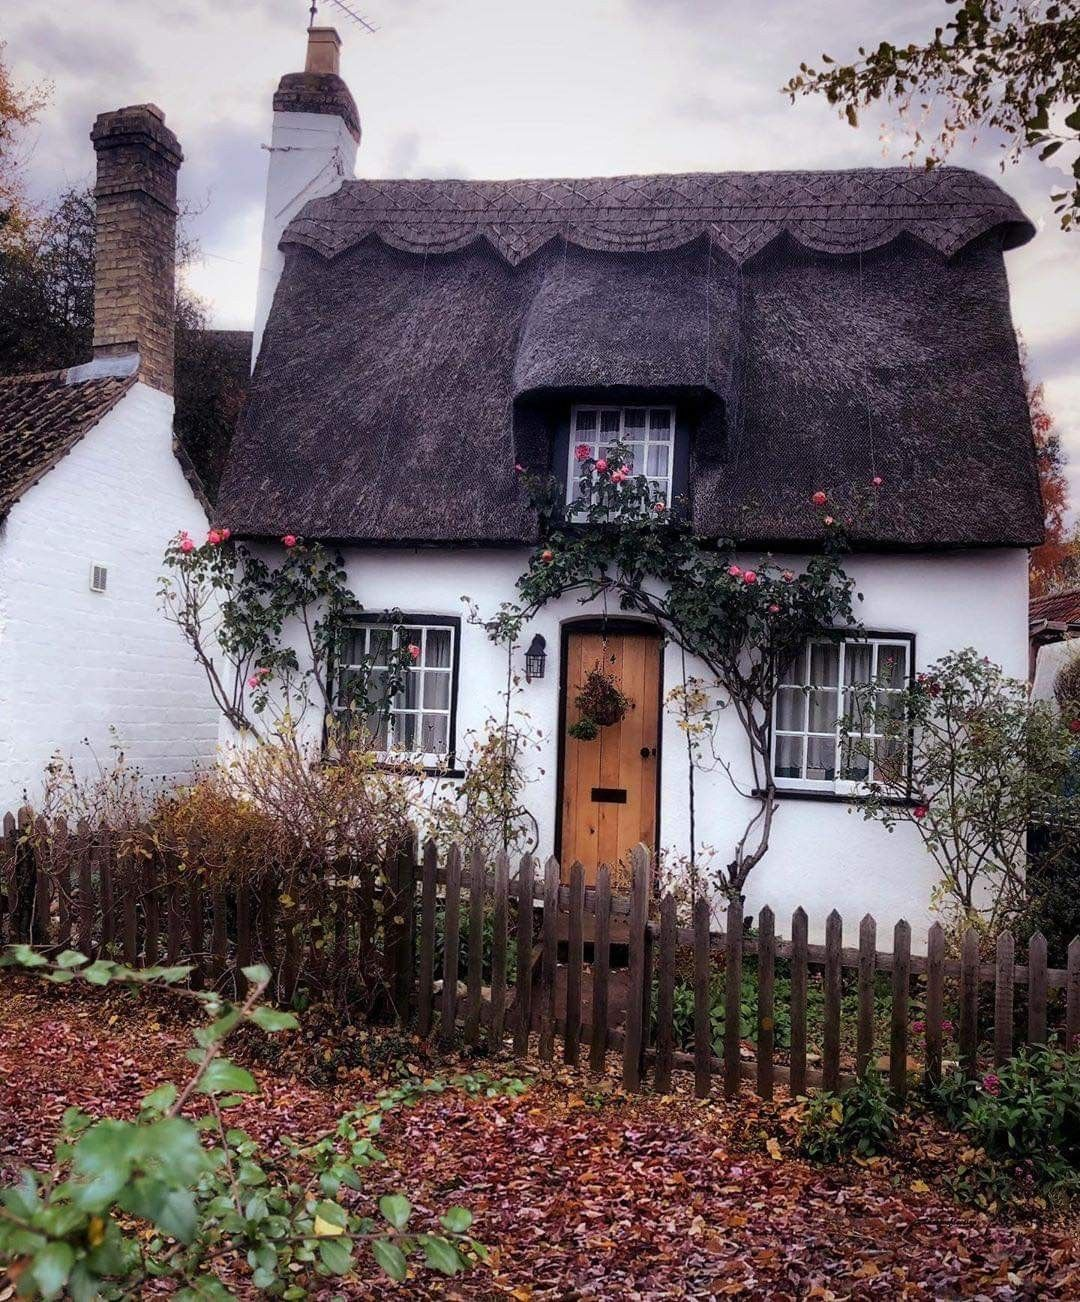 wee cottage with a thatched roof #witchcottage